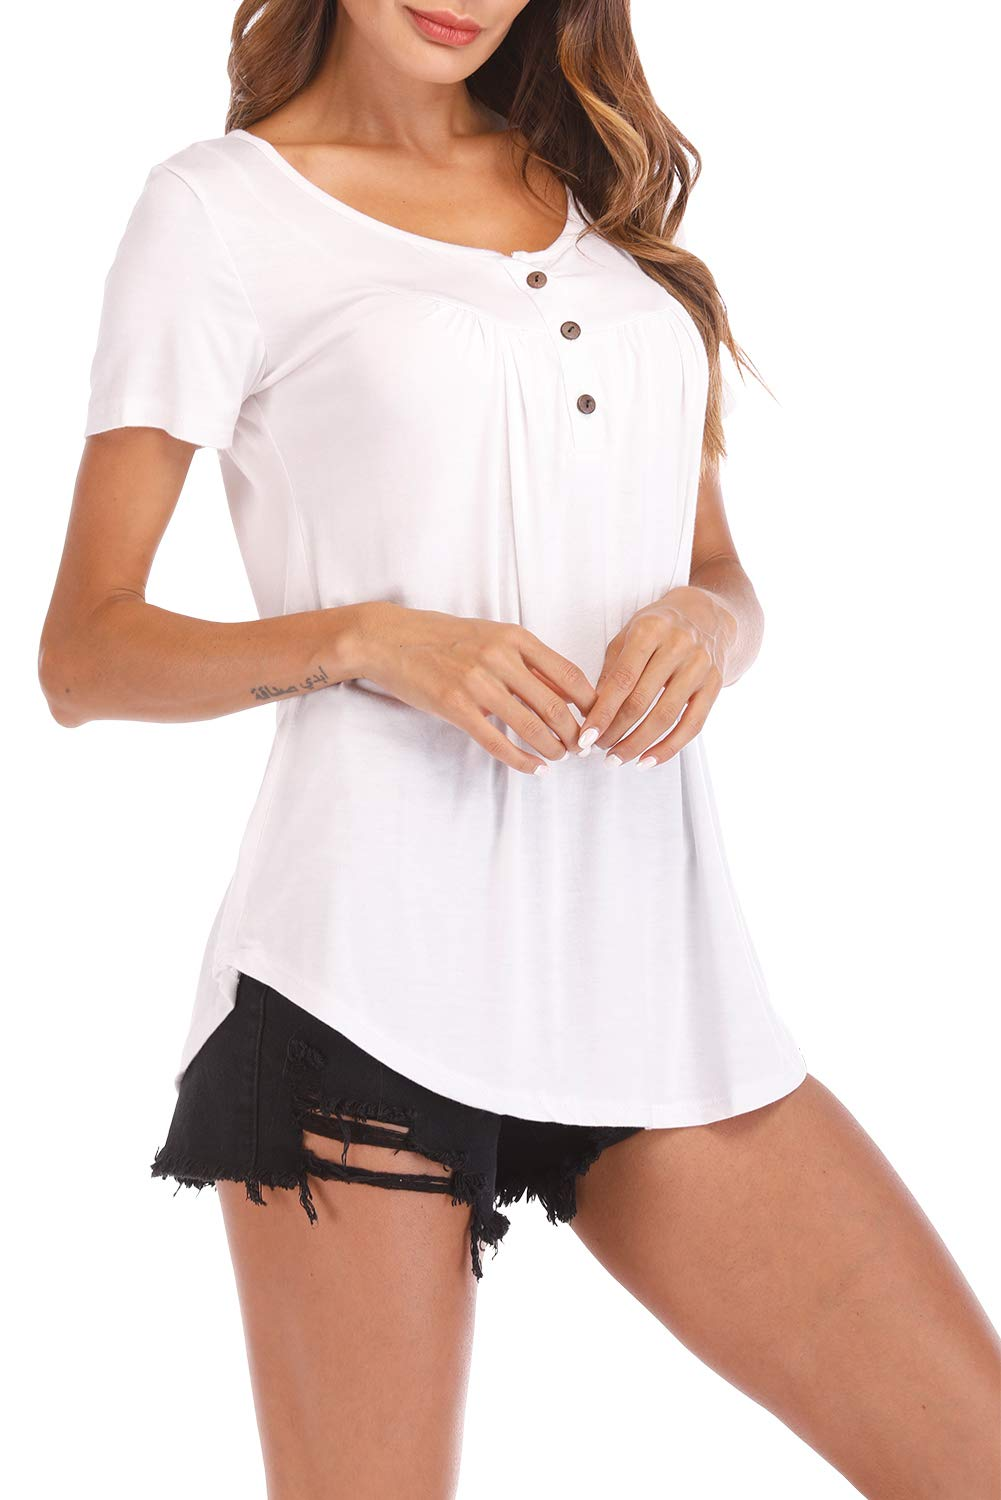 Fantastic Zone Womens Tops and Blouses Short Sleeve Tunics Plus Size Summer Shirts White XXL by Fantastic Zone (Image #3)